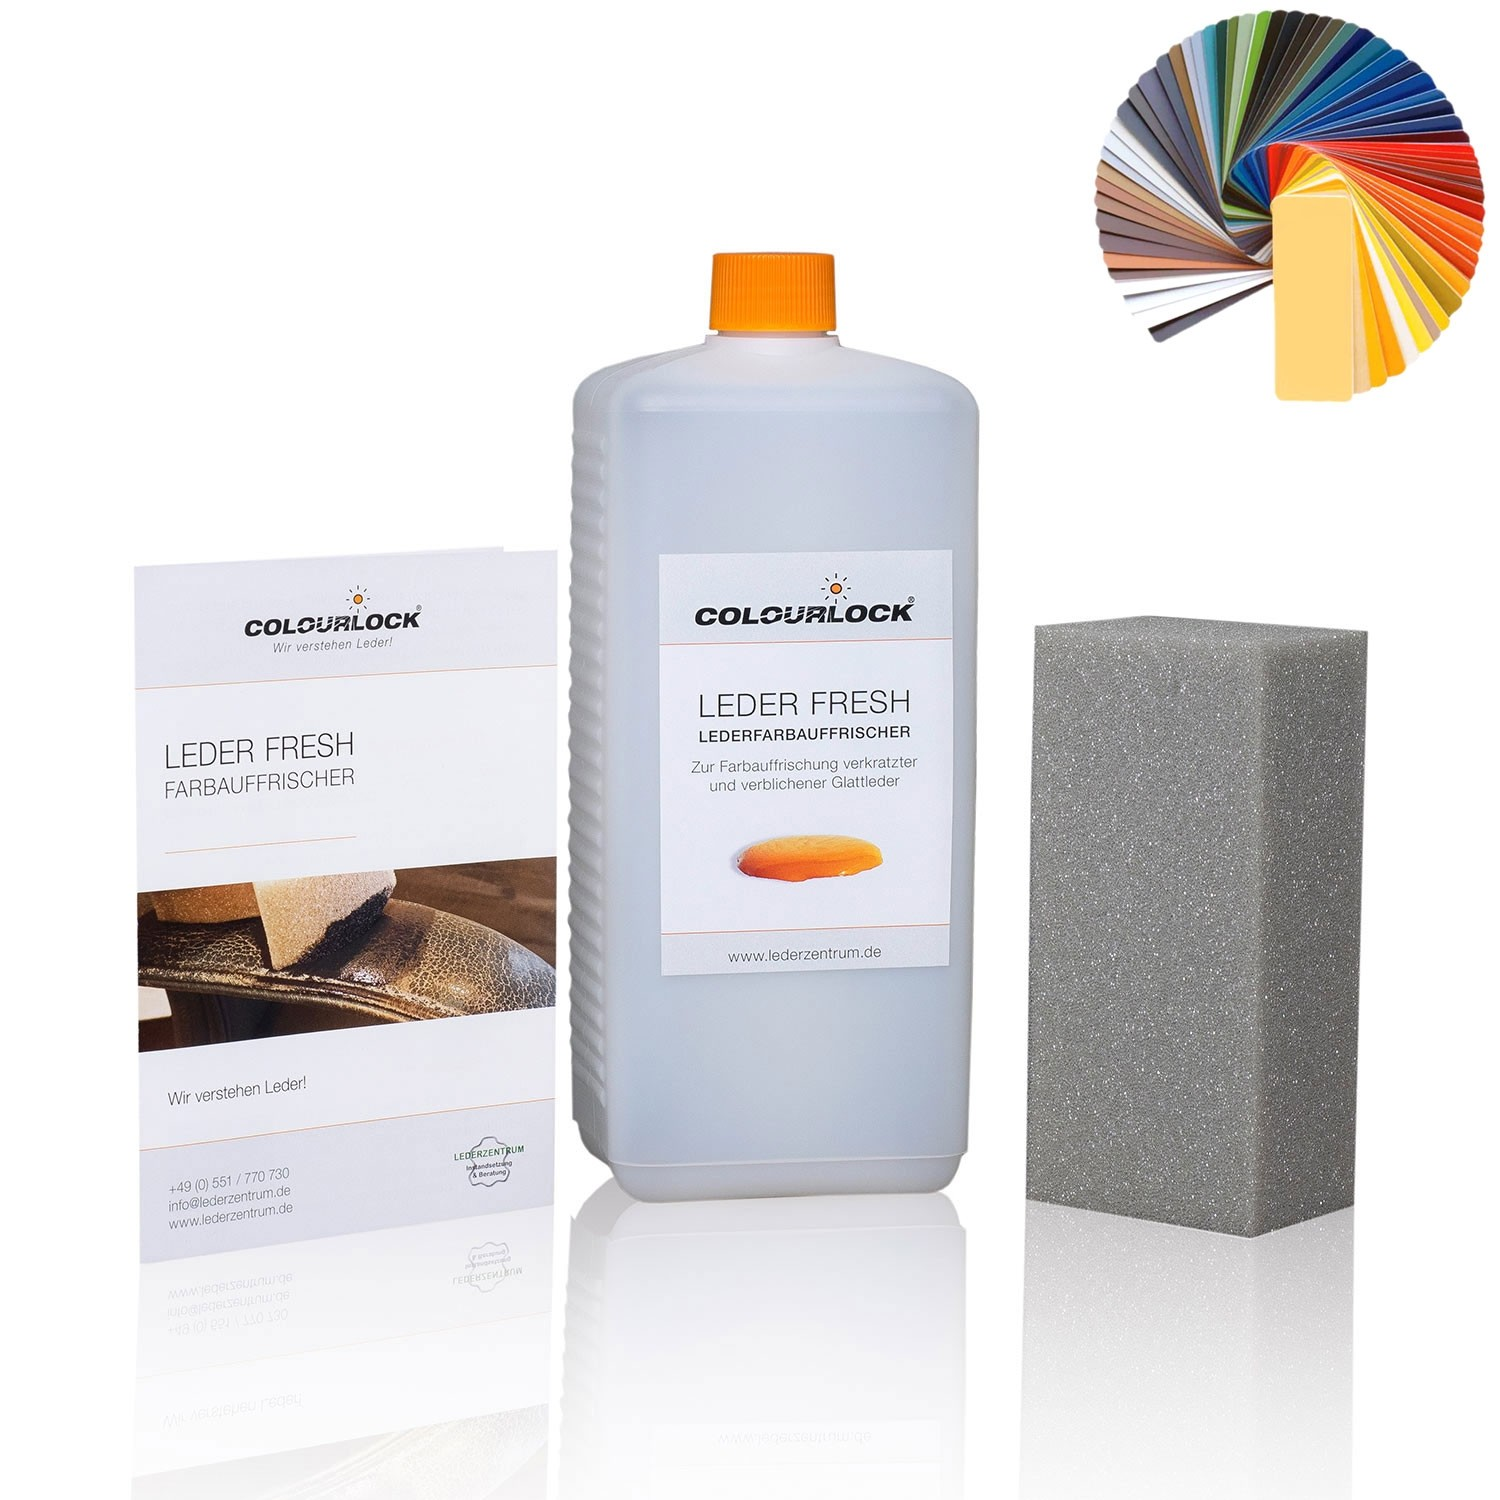 COLOURLOCK Leder Fresh Tönung, 1 Liter